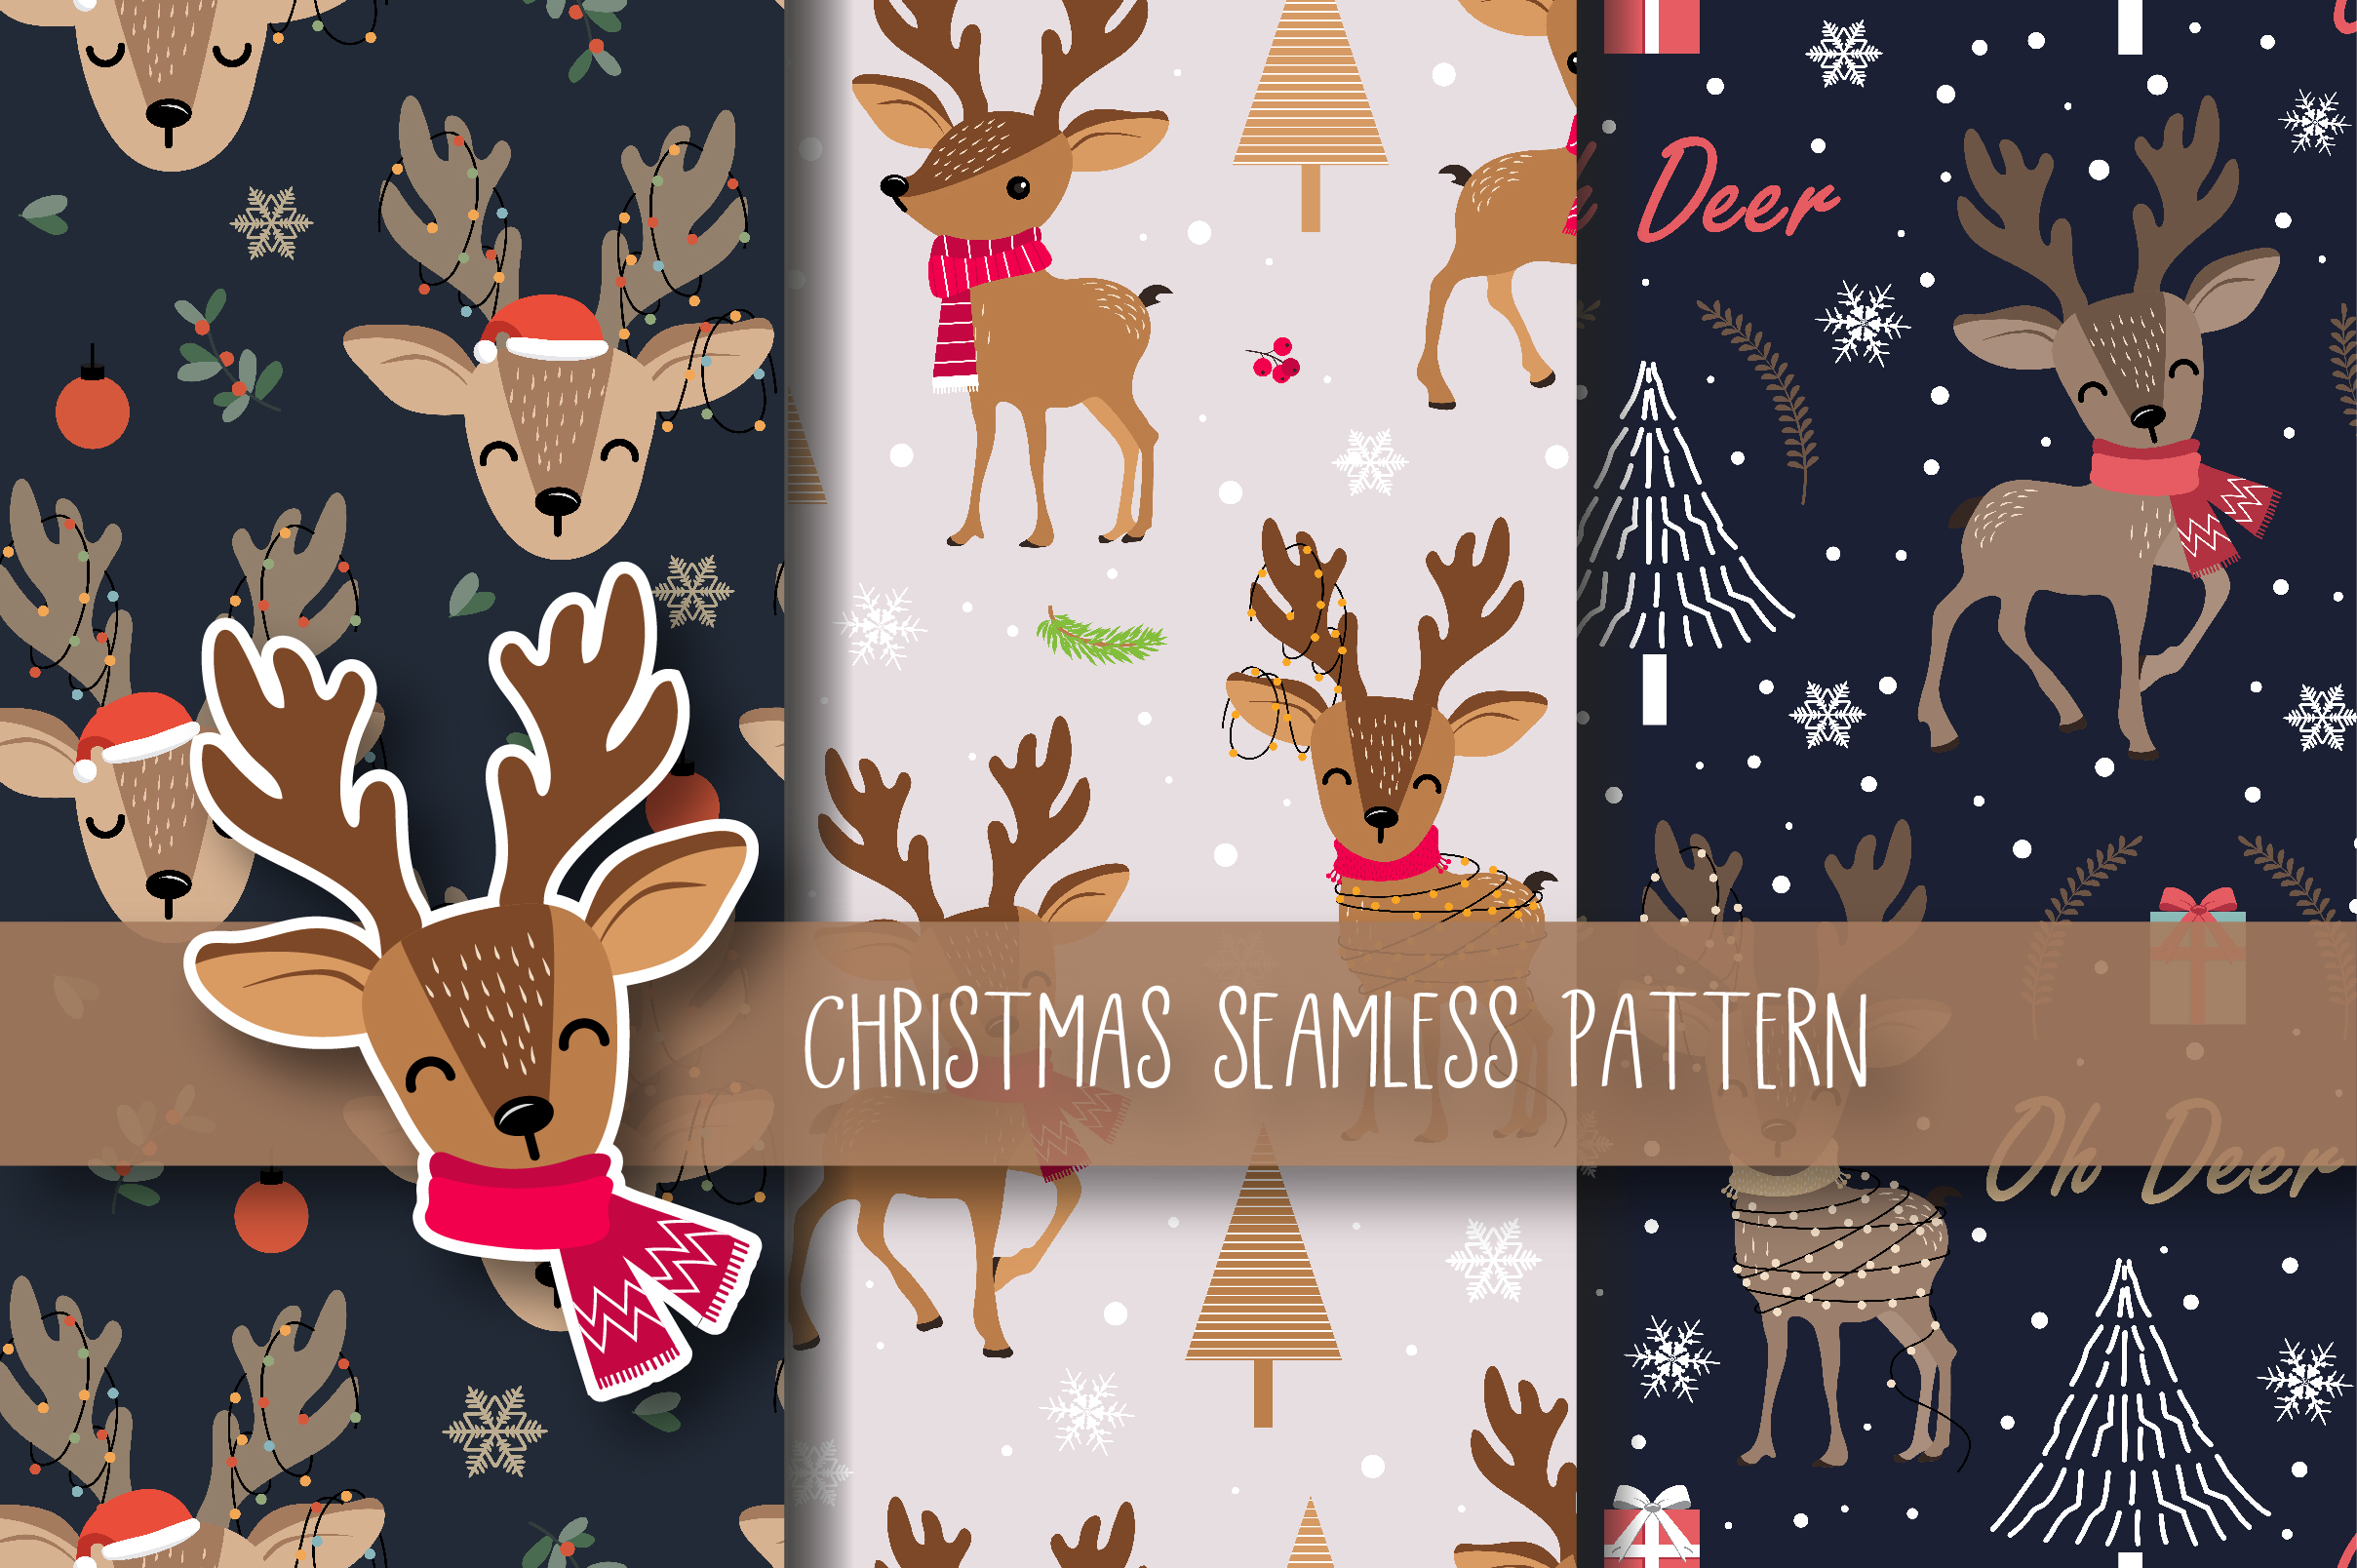 Download Free Christmas Seamless Pattern Reindeer Graphic By Jannta Creative for Cricut Explore, Silhouette and other cutting machines.